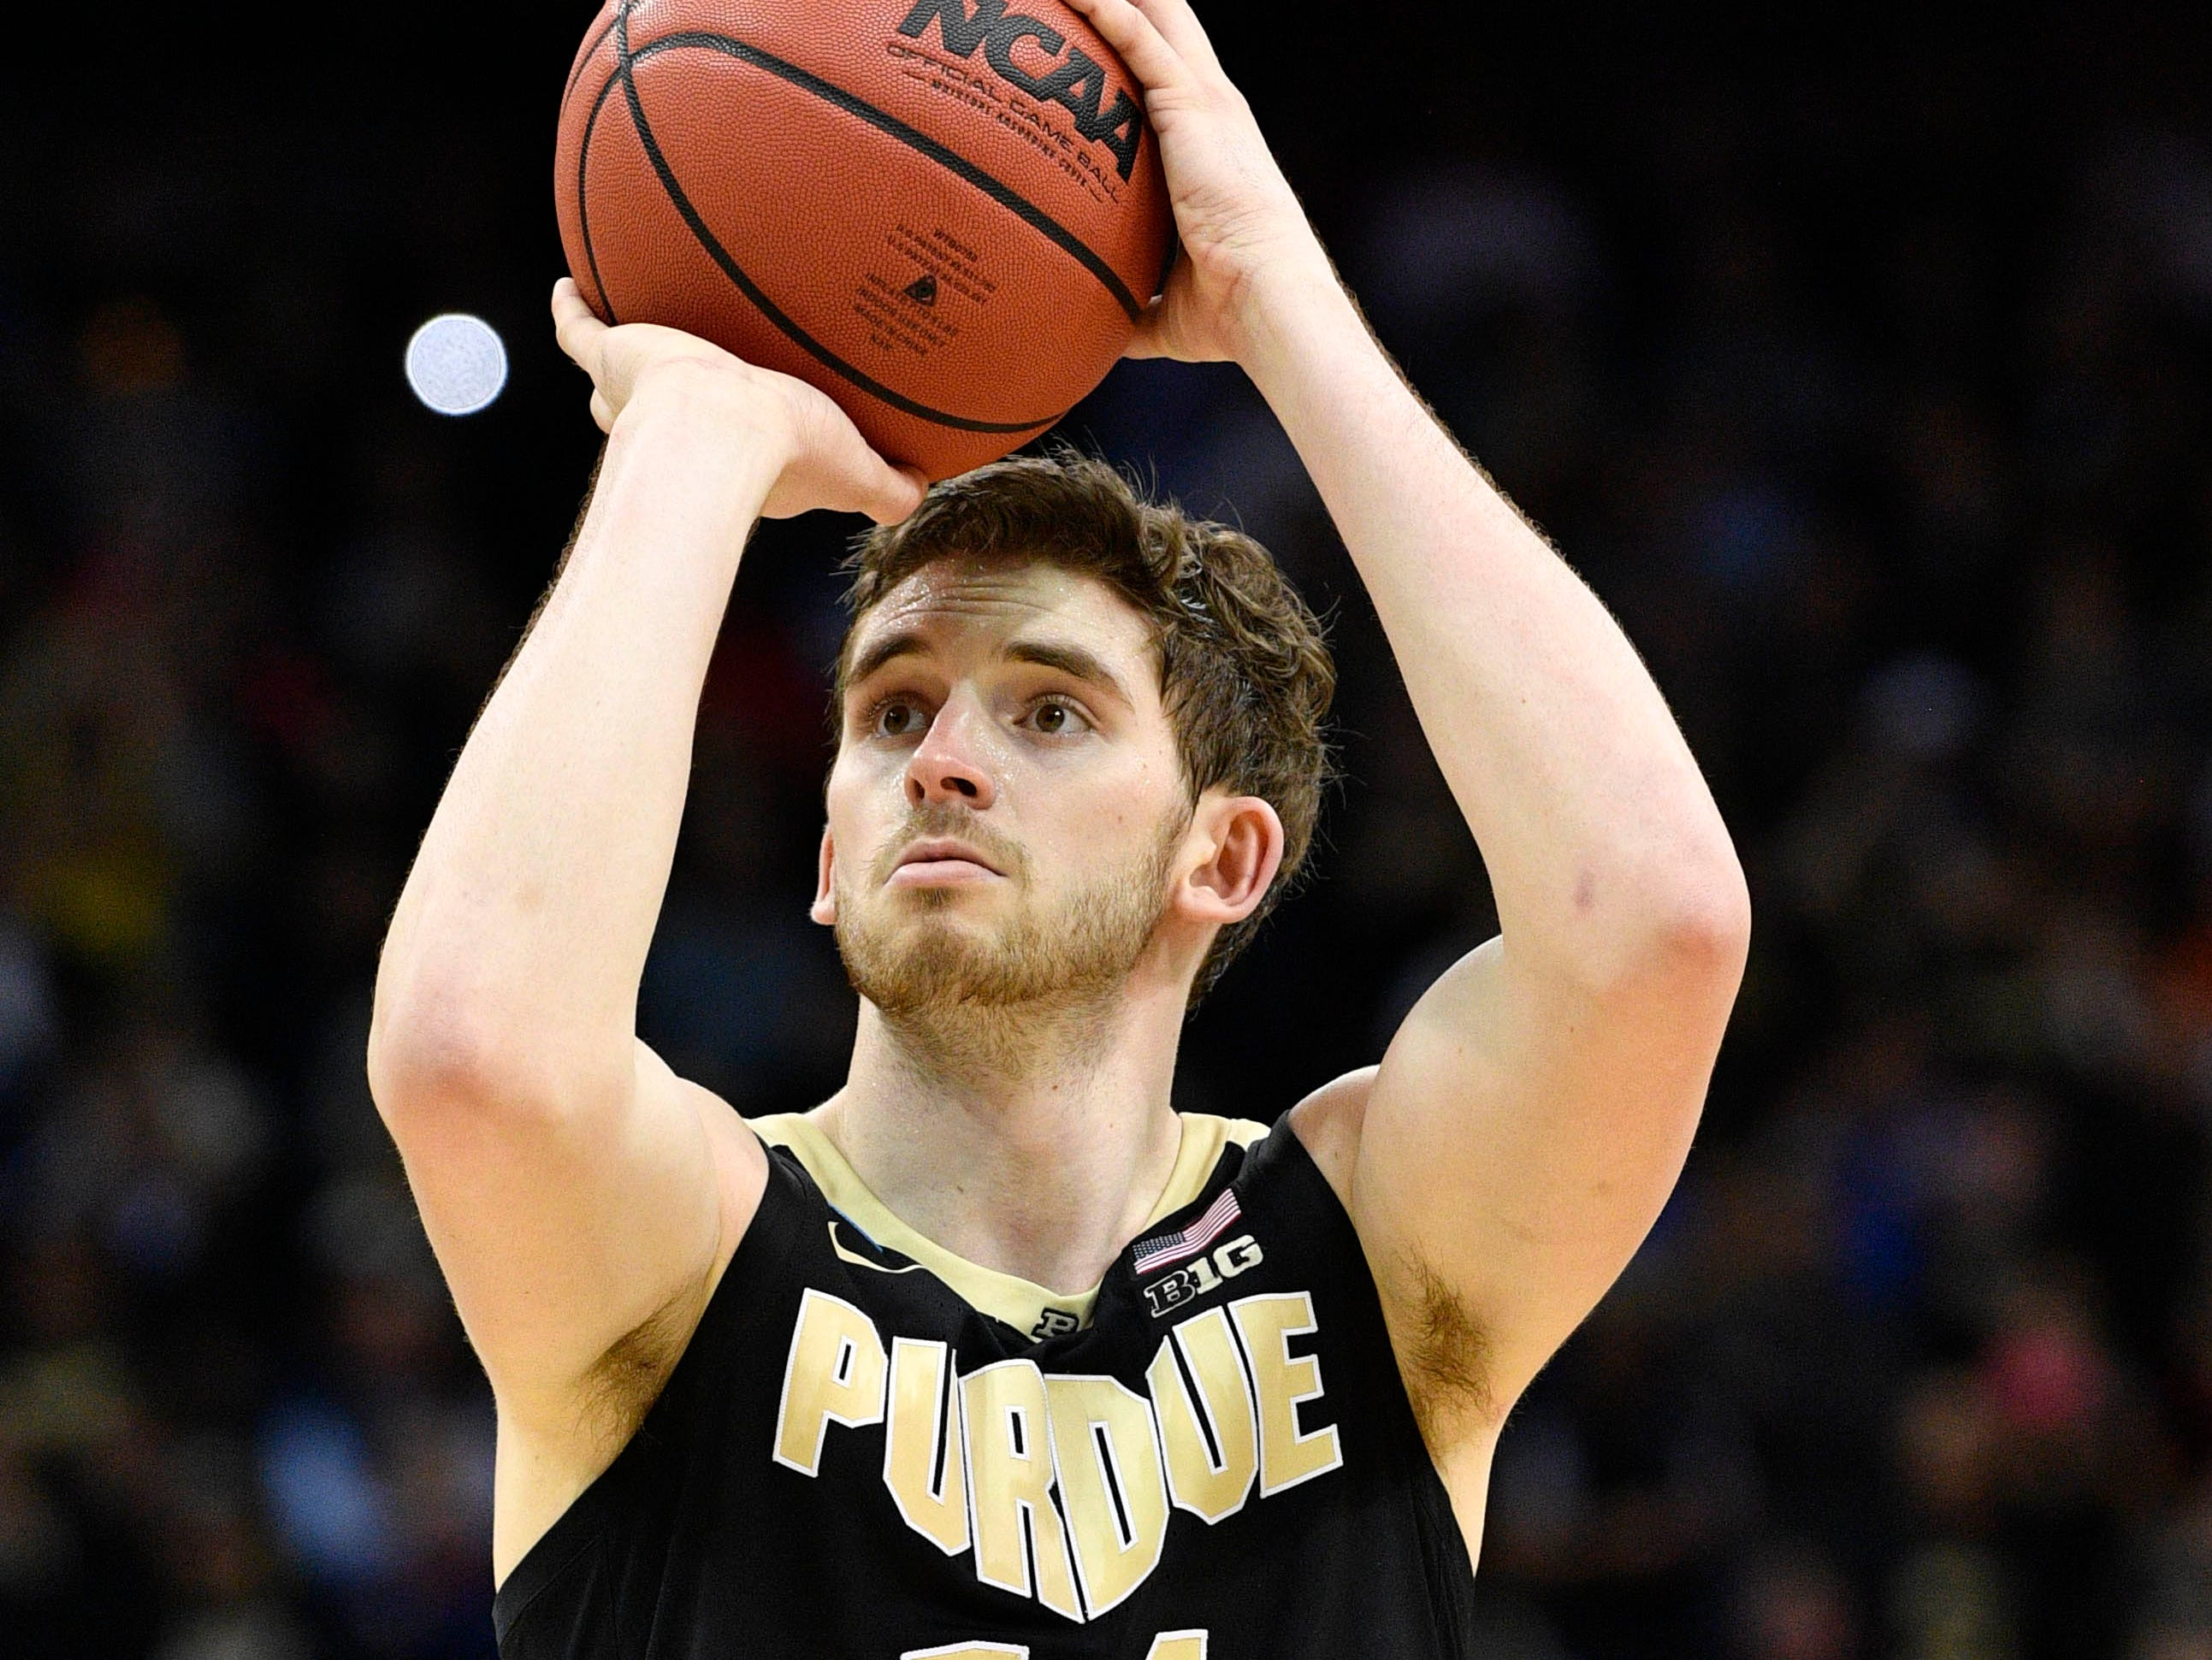 Mar 30, 2019; Louisville, KY, United States; Purdue Boilermakers guard Ryan Cline (14) shoots from the free throw line during the second half in the championship game against the Virginia Cavaliers of the south regional of the 2019 NCAA Tournament at KFC Yum Center. Mandatory Credit: Jamie Rhodes-USA TODAY Sports